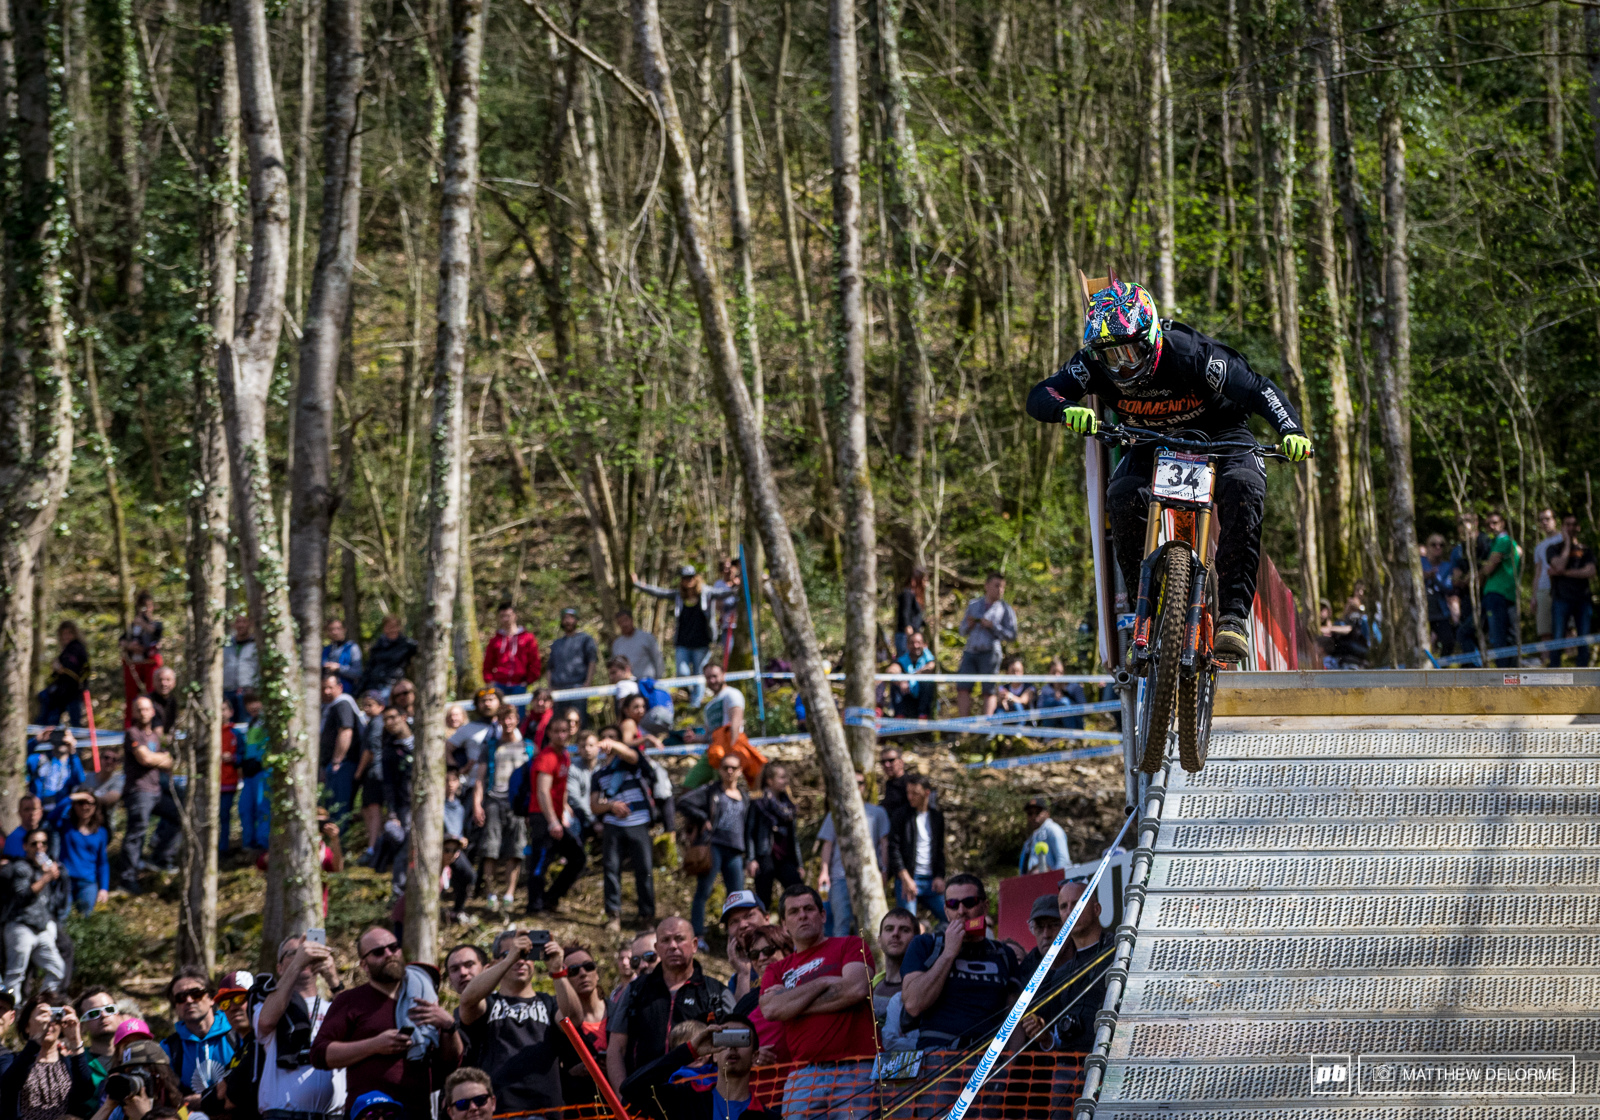 Amaury Pierron was one of many French that shook up the field today. Pierron came across the line in fifth place.